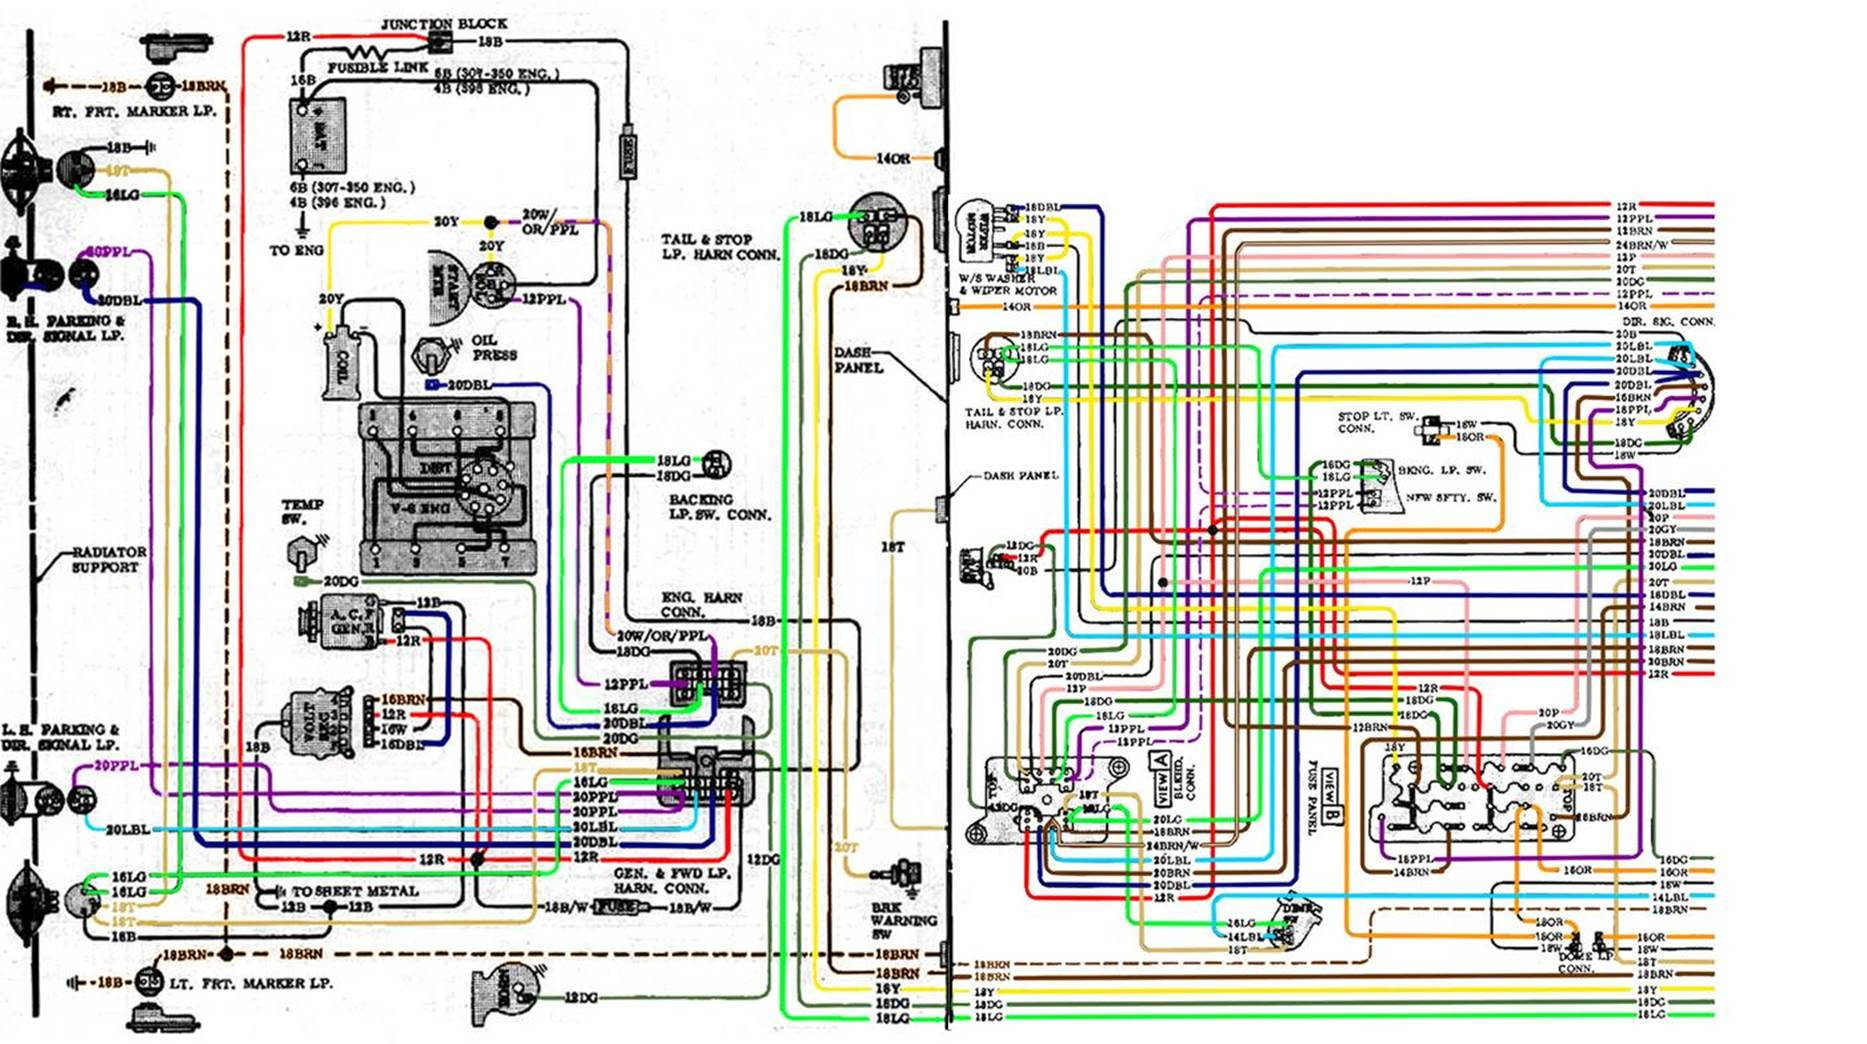 Wiring 67 72 Chevy Truck - Wiring Diagram Data on 55 chevy headlight switch diagram, headlight switch parts, headlight adjustment diagram, cruise control diagram, headlight switch screw, headlight switch operation, headlight bulb diagram, 3 pole switch diagram, 2005 jeep wrangler headlight diagram, universal ignition switch diagram, headlight parts diagram, headlight wire diagram, headlight dimmer switch diagram, headlight switch ford,